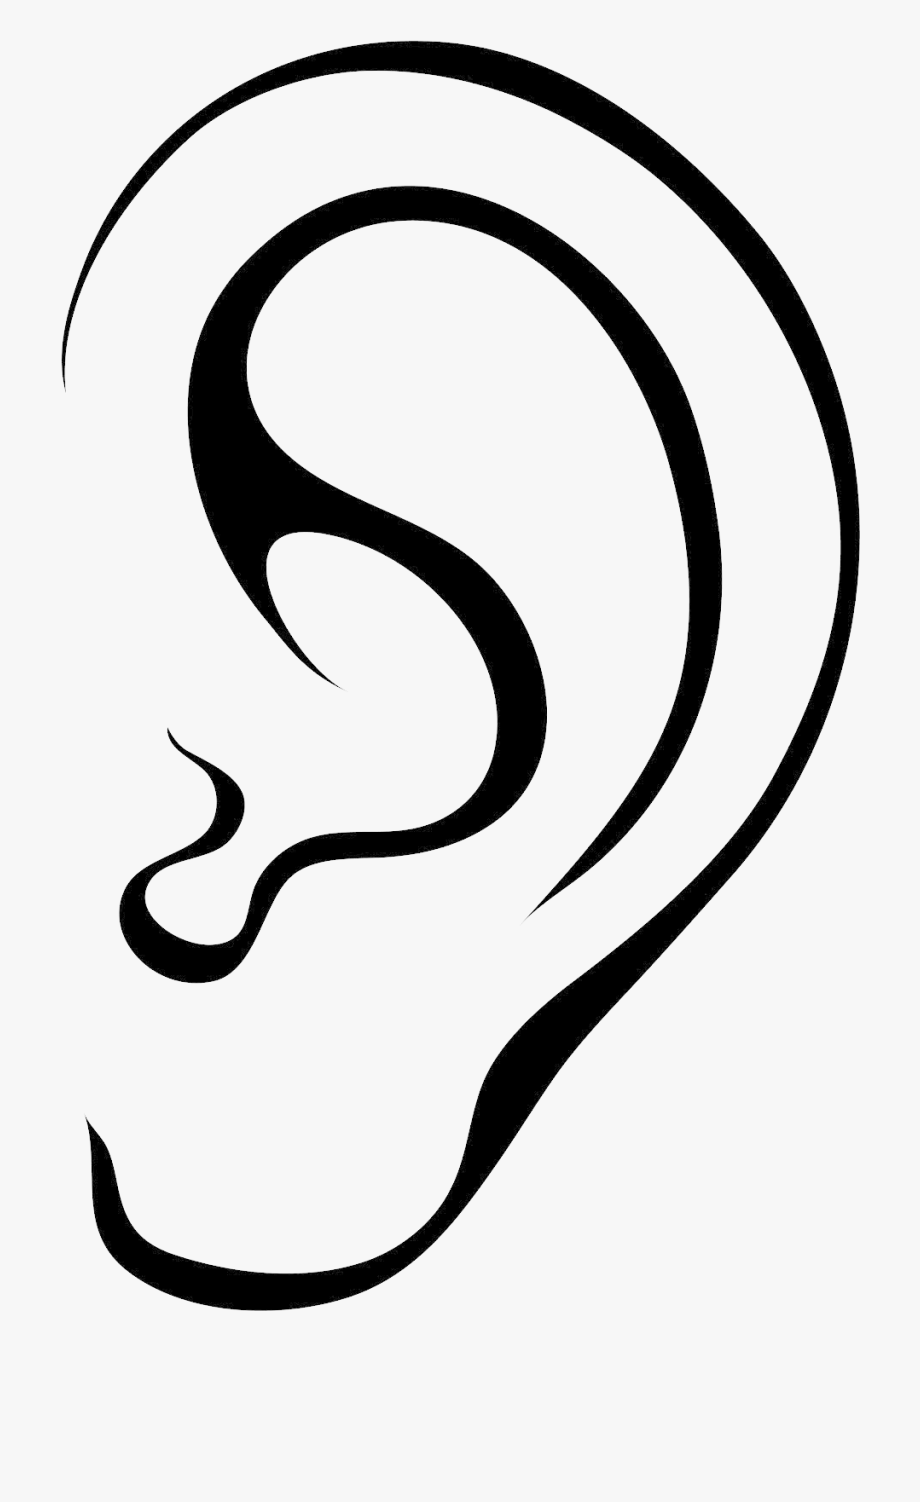 outline picture of ear ear outline svg png icon free download 38151 picture of outline ear